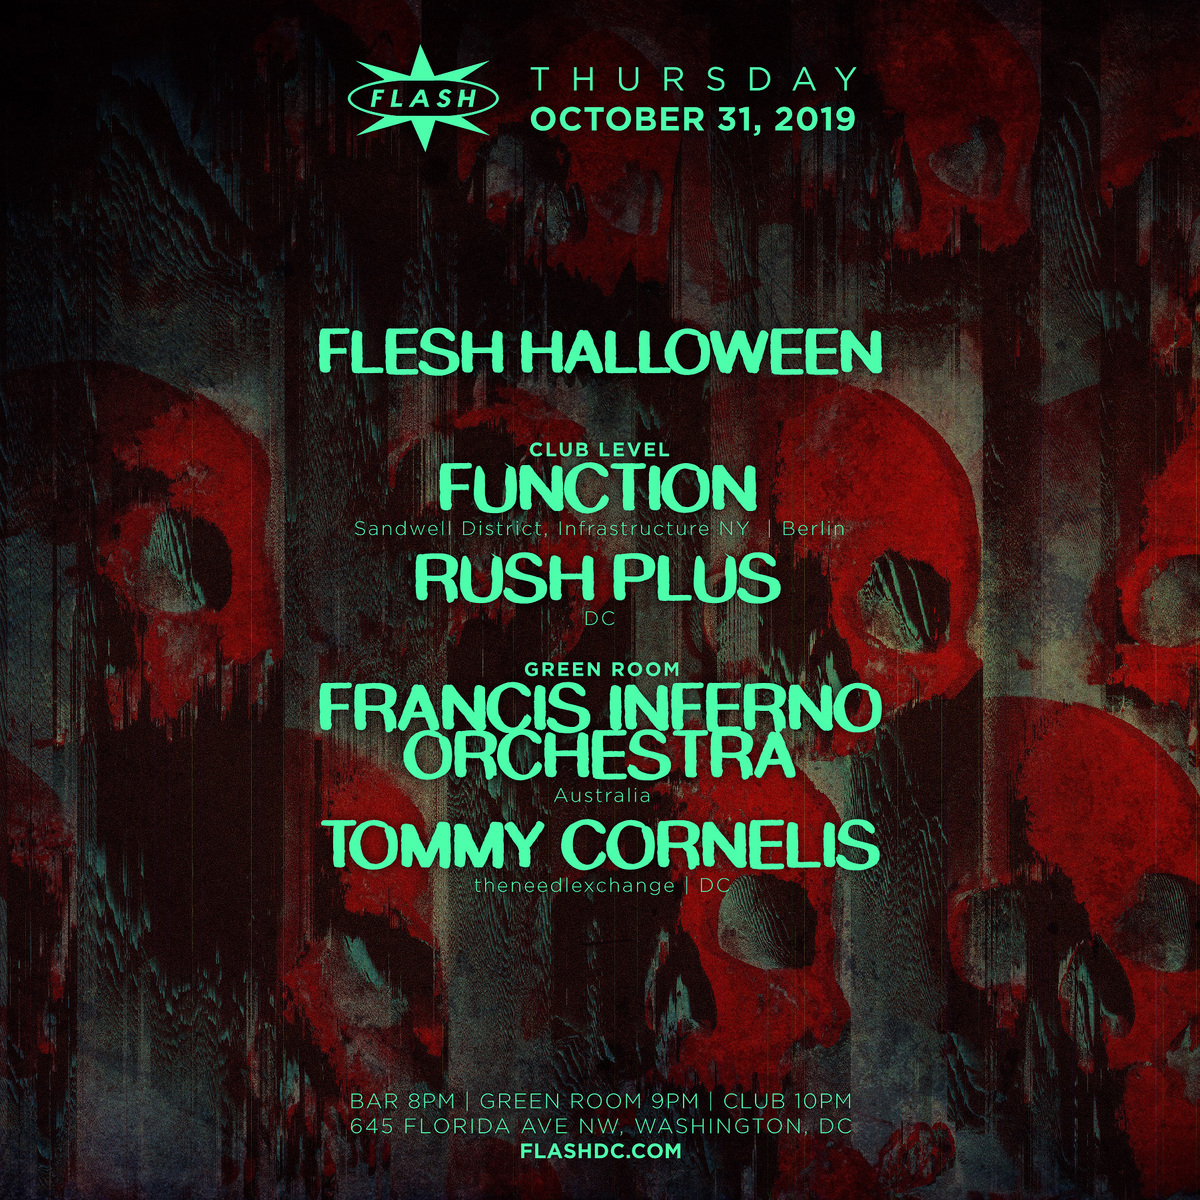 FLESH Halloween event thumbnail